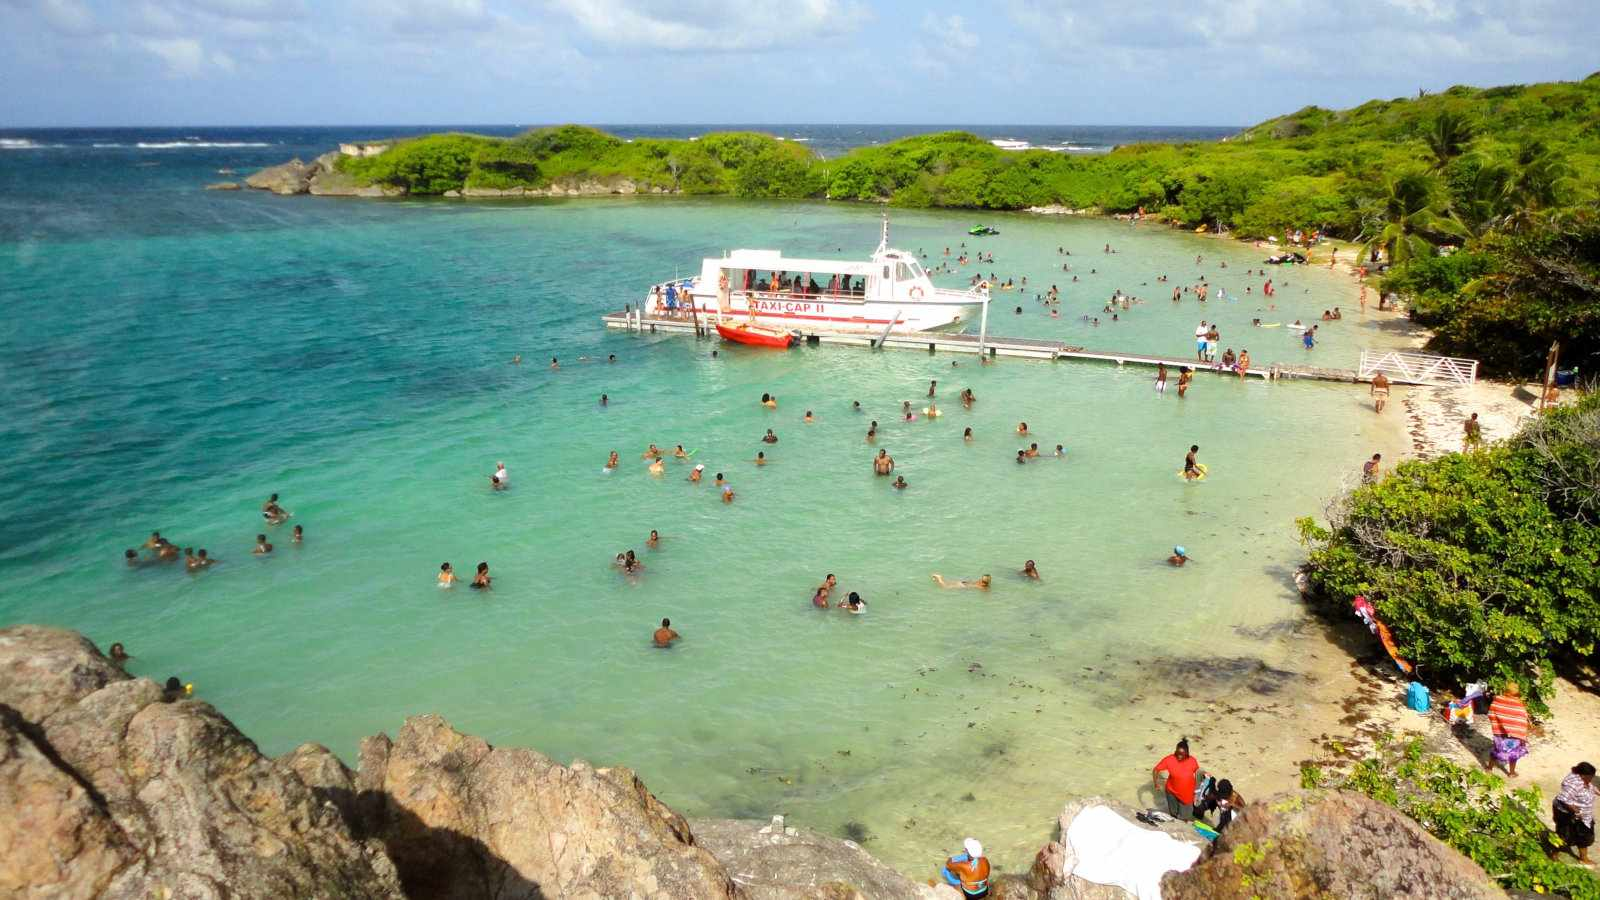 Martinique is a beautiful Caribbean island that's a safe destination for gay travellers